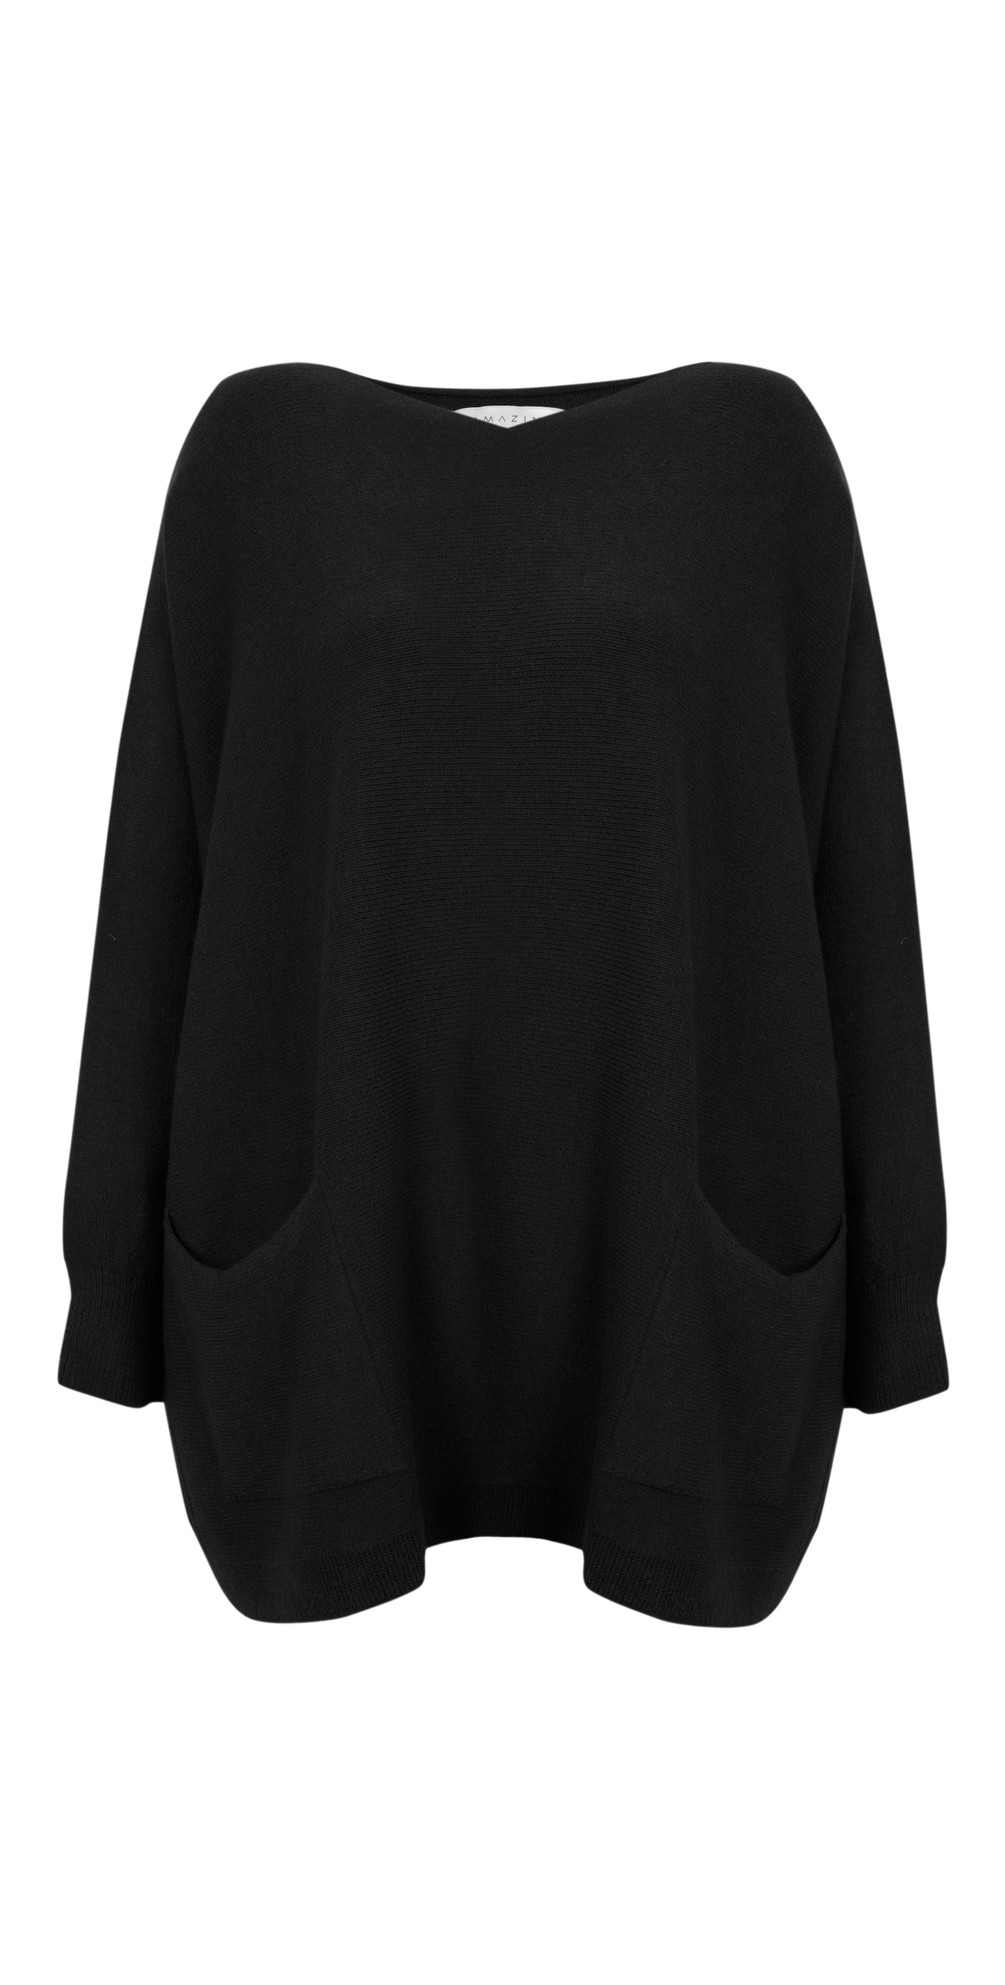 Carys Sweater Black - Amazing Woman